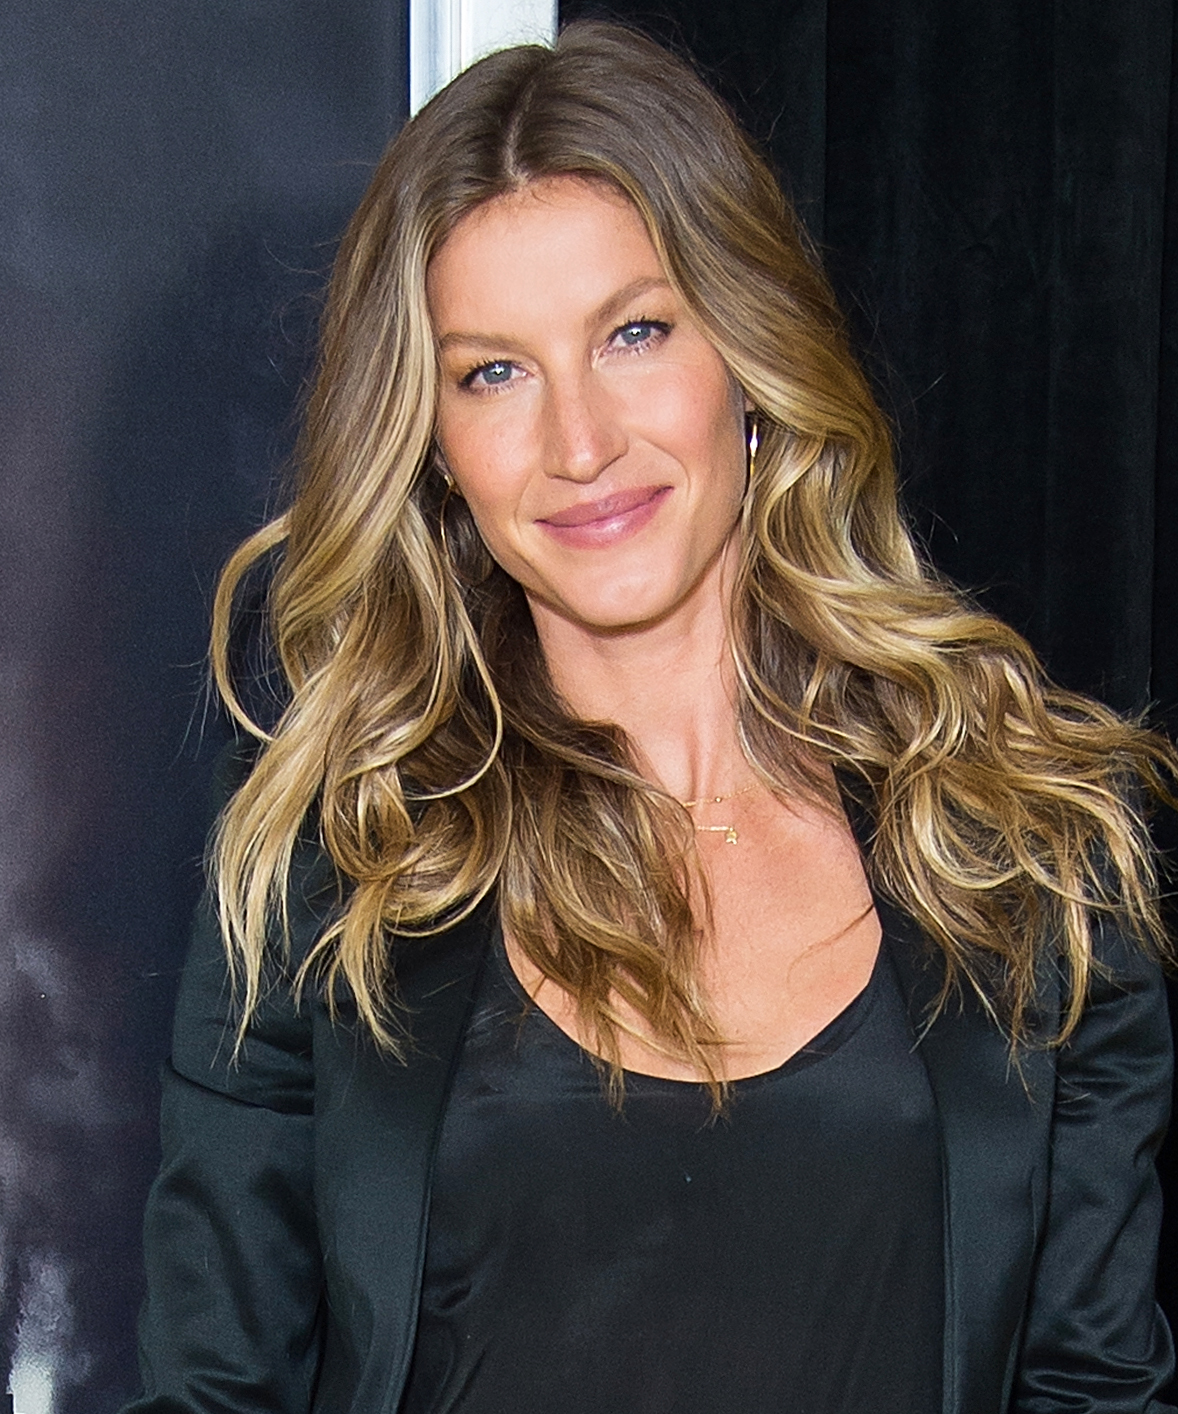 Gisele Bundchen Reveals Recipes that Maintain Her Figure ... Gisele Bundchen